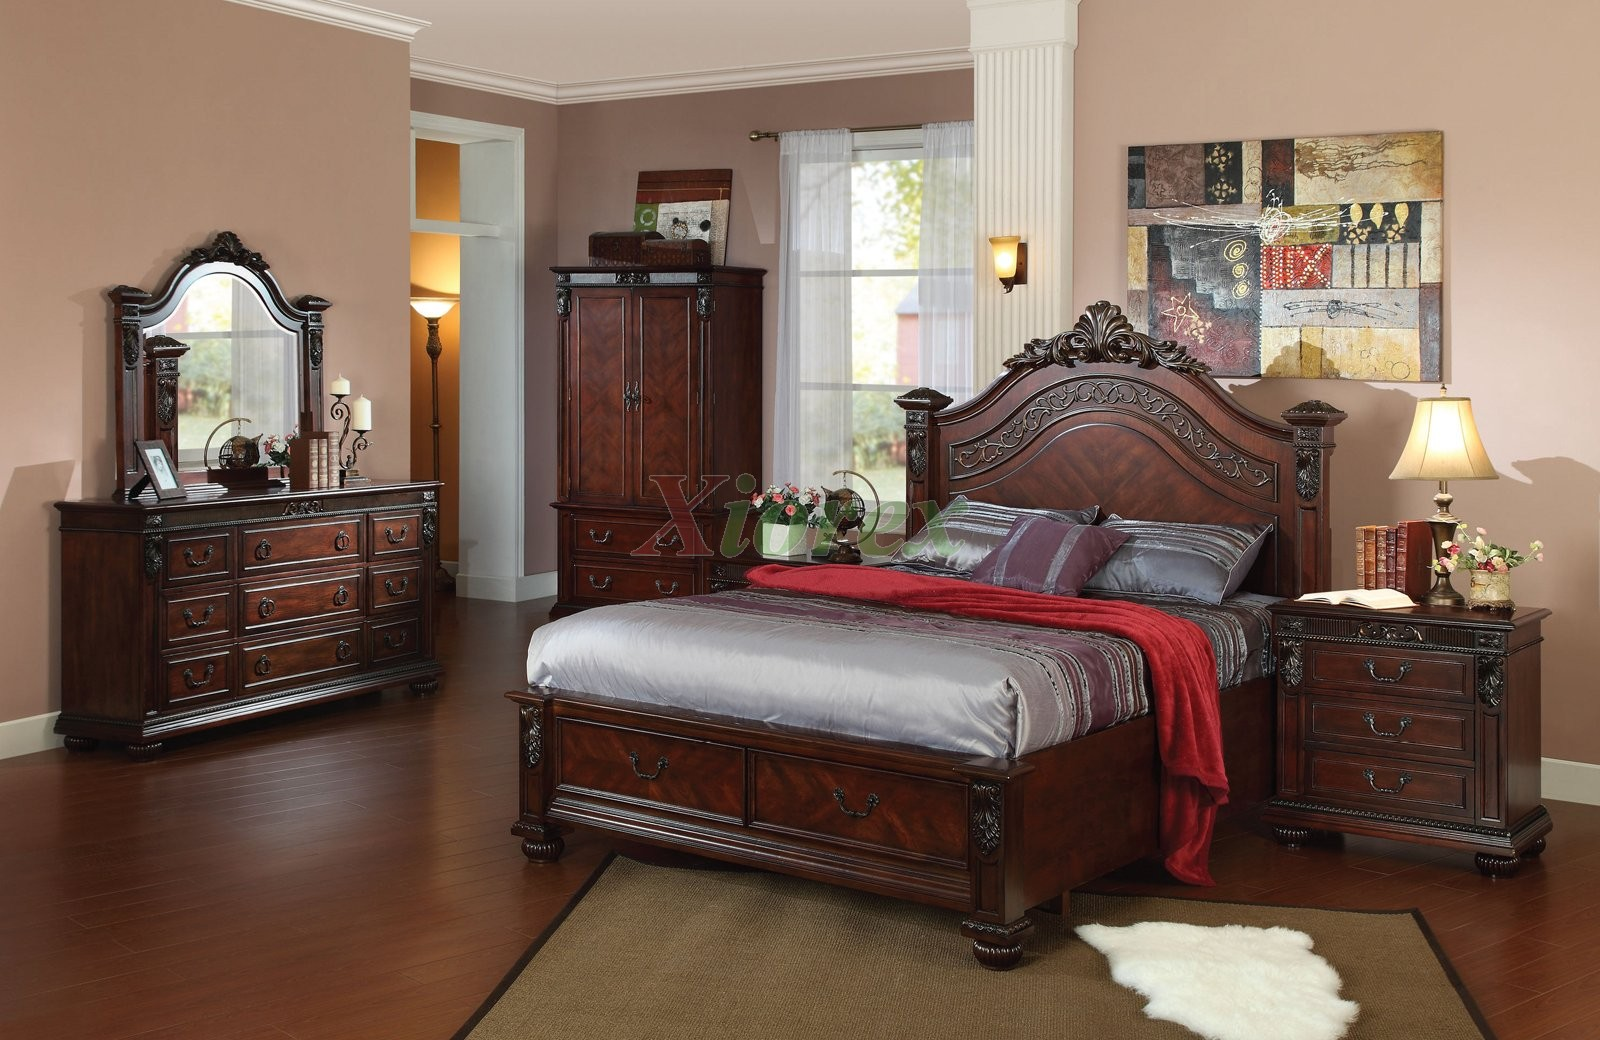 Bedroom Furniture Set 109 W Arched Headboard Queen Bed King Bed